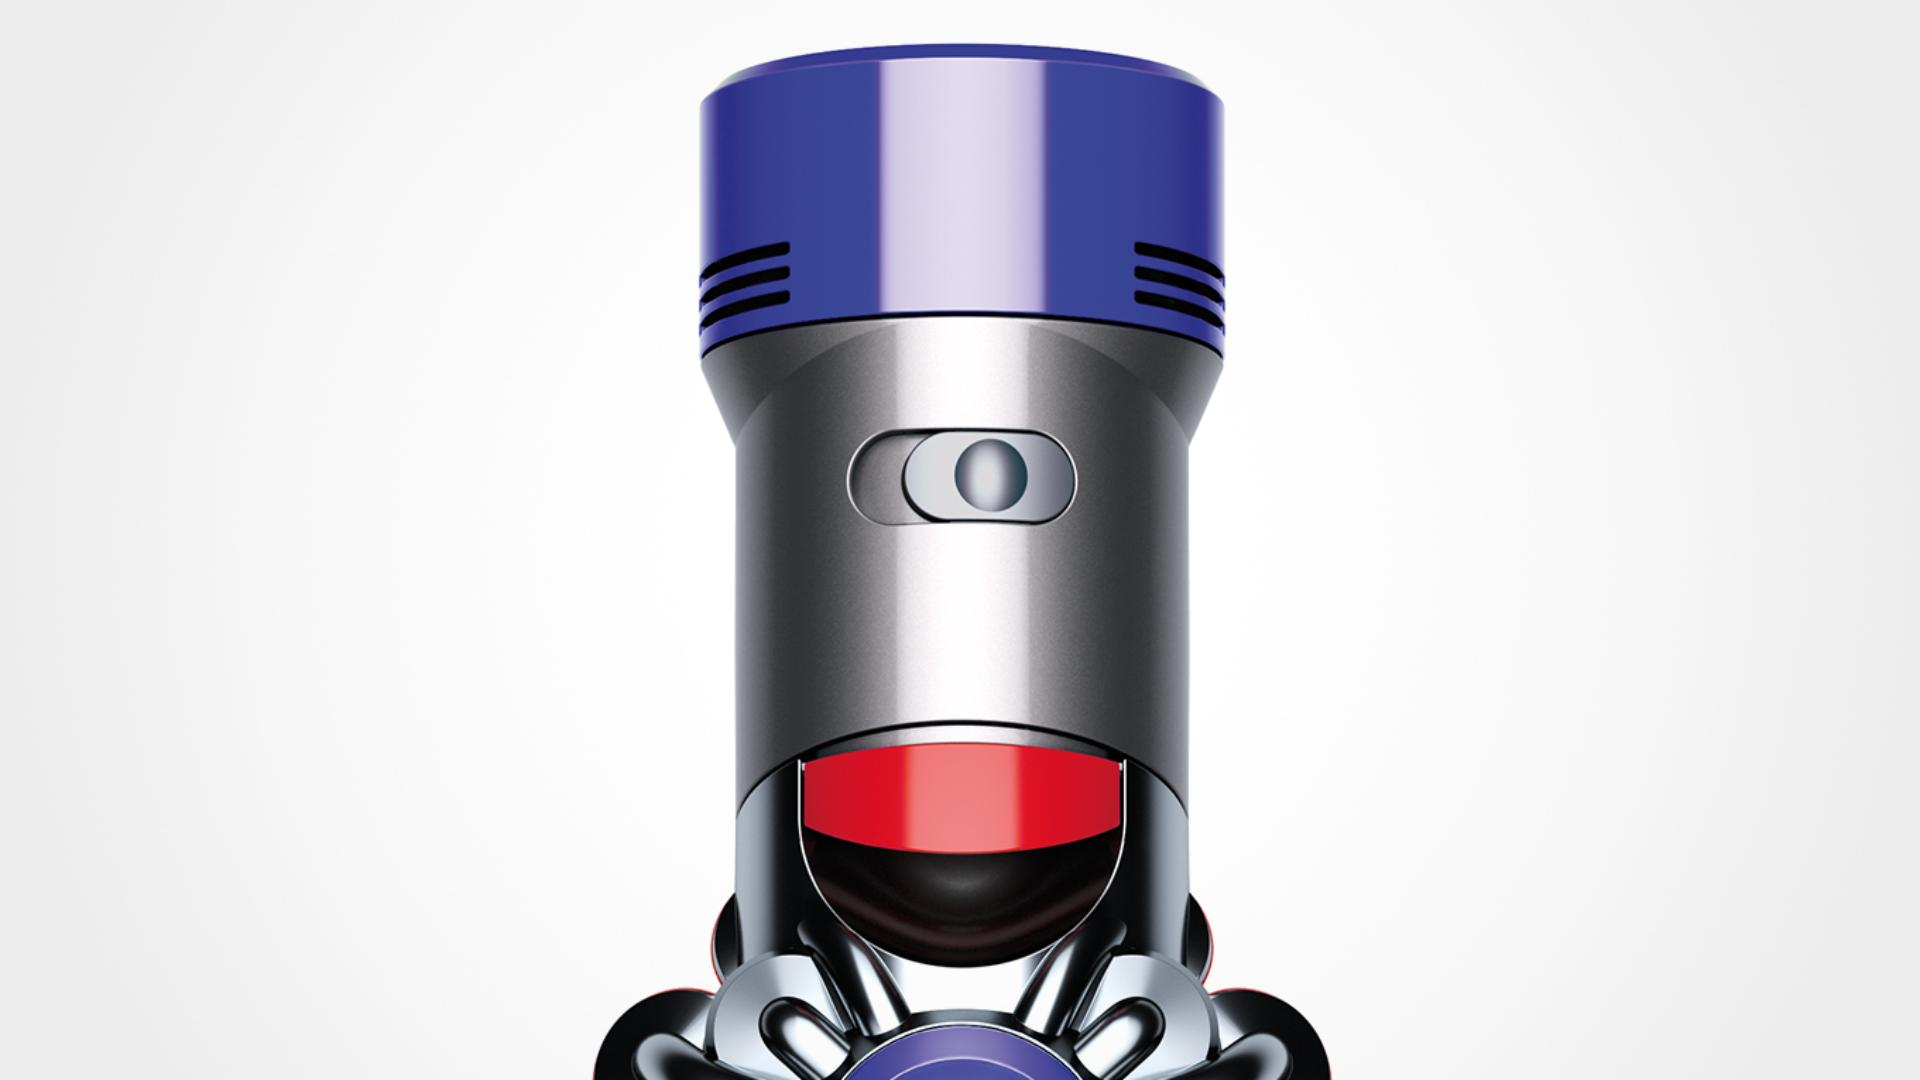 Close-up of Dyson V8 Absolute vacuum power mode switch